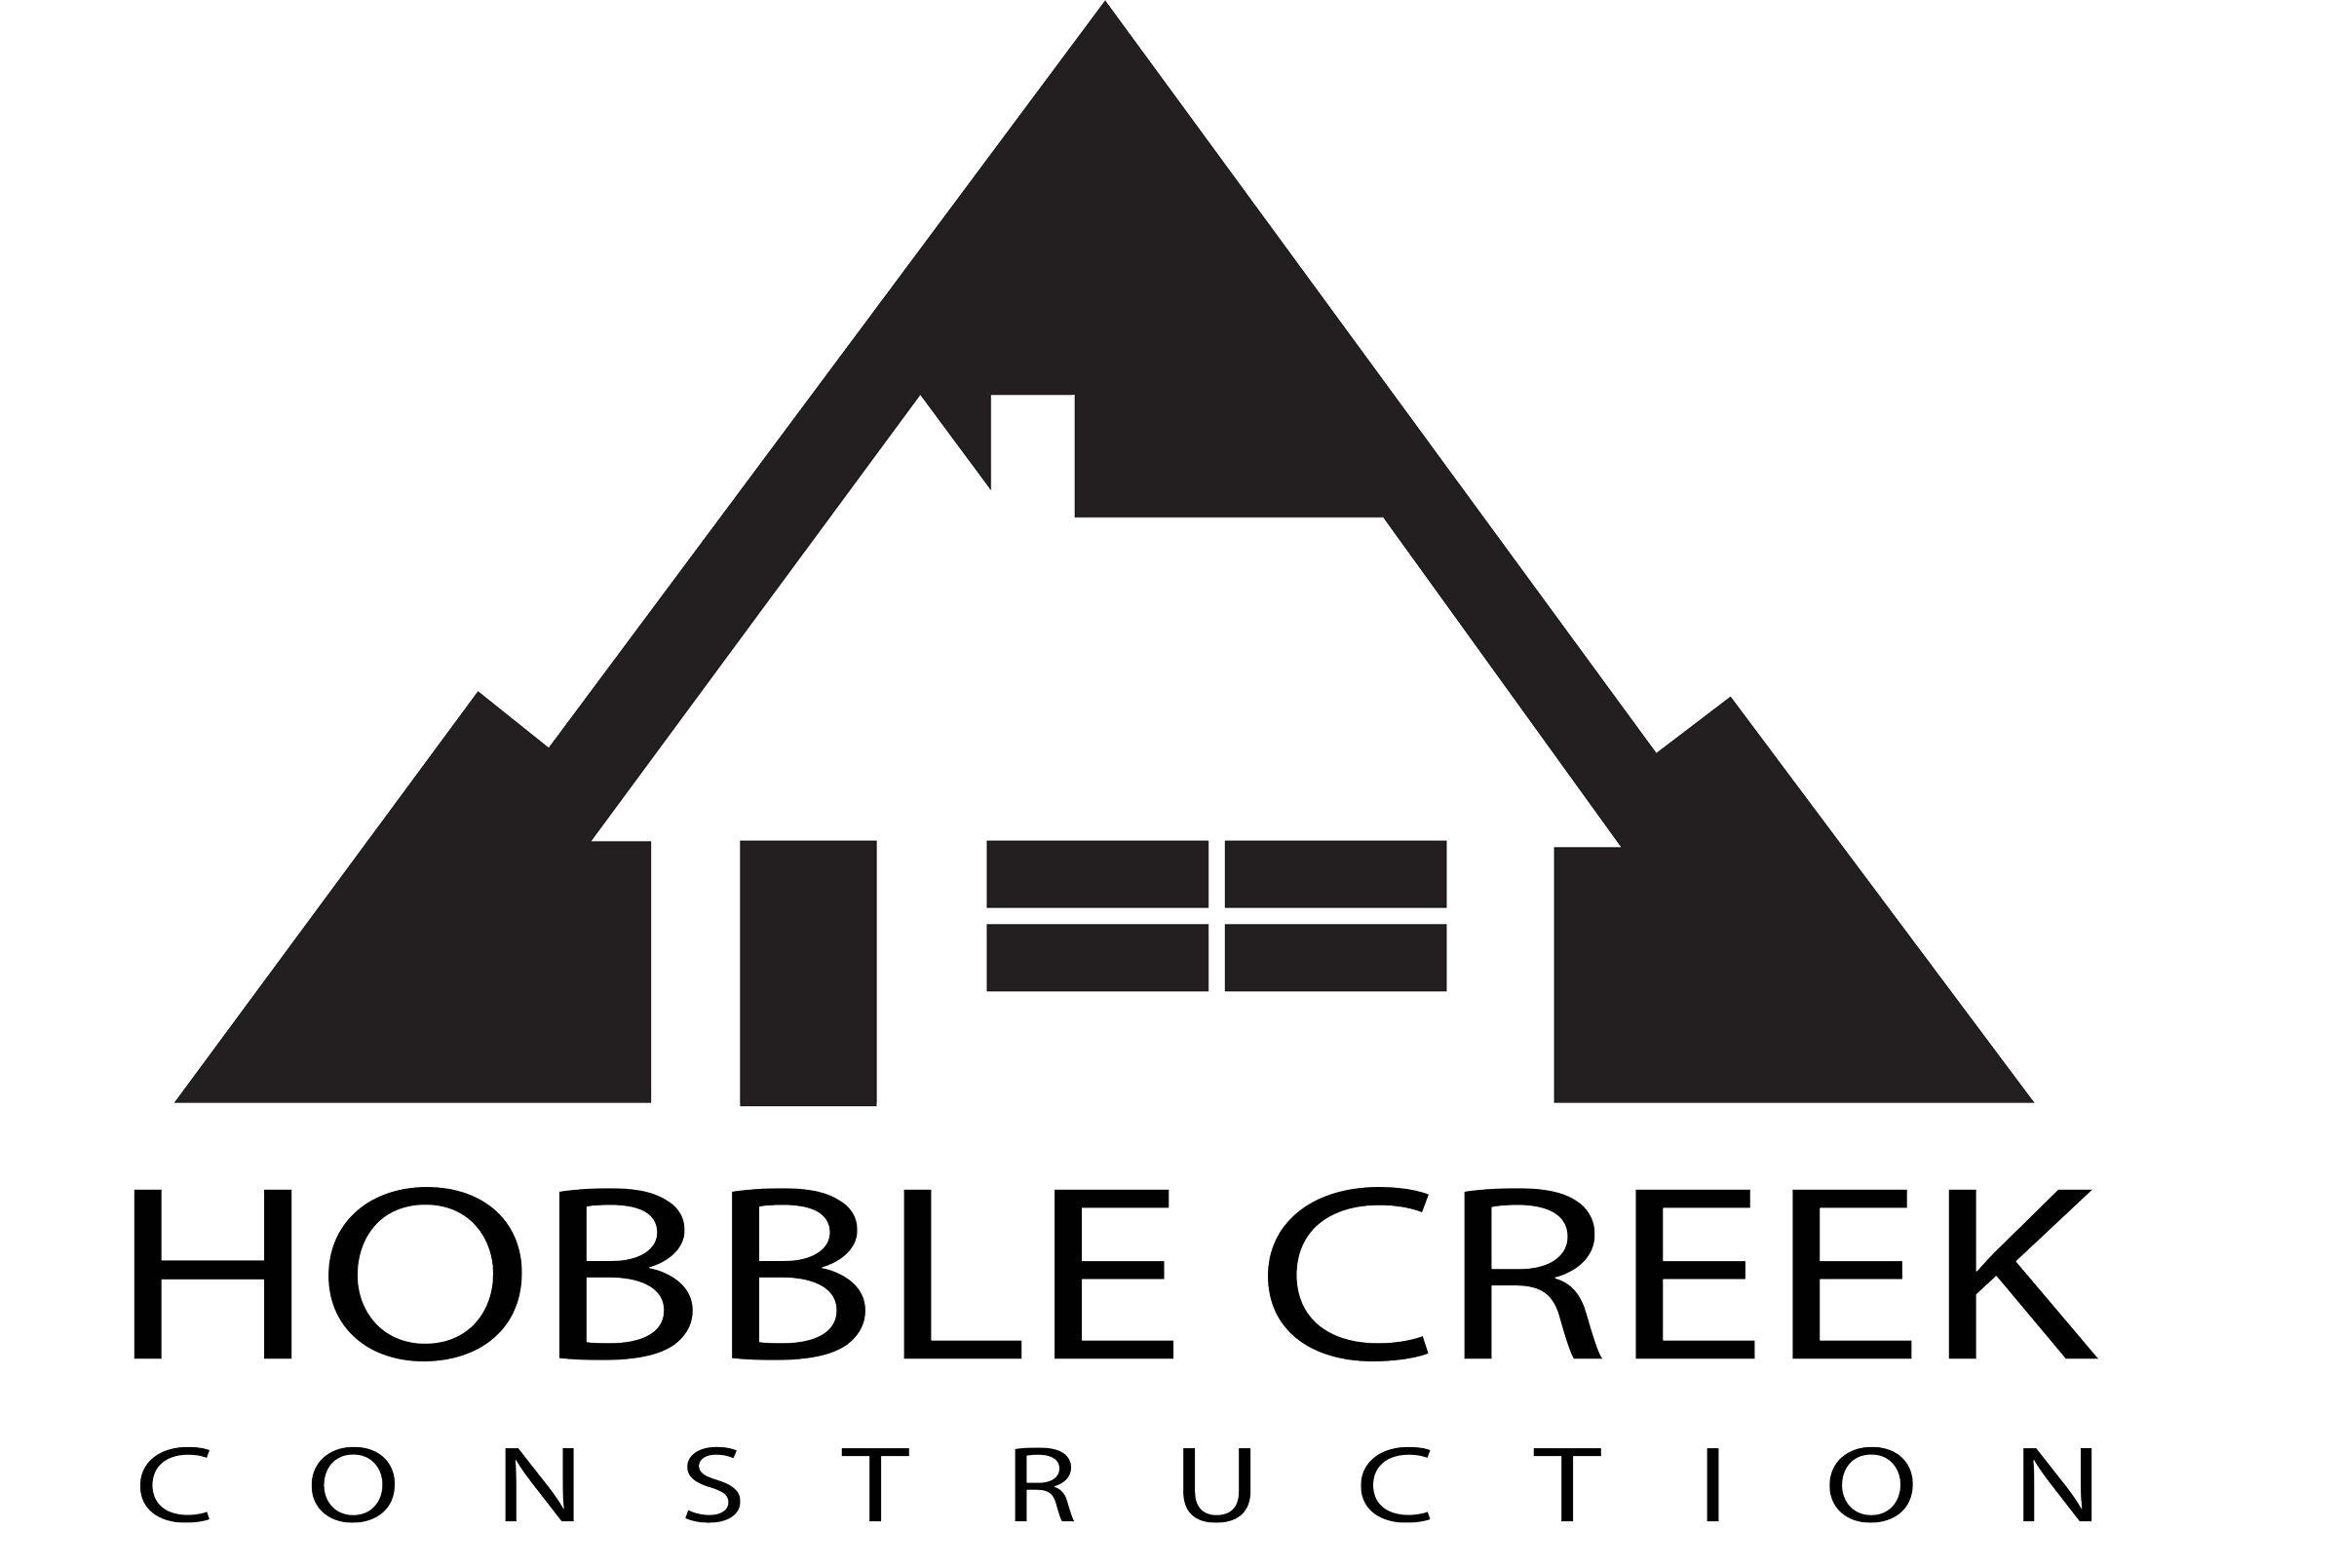 HobbleCreekConstruction-Logo.png